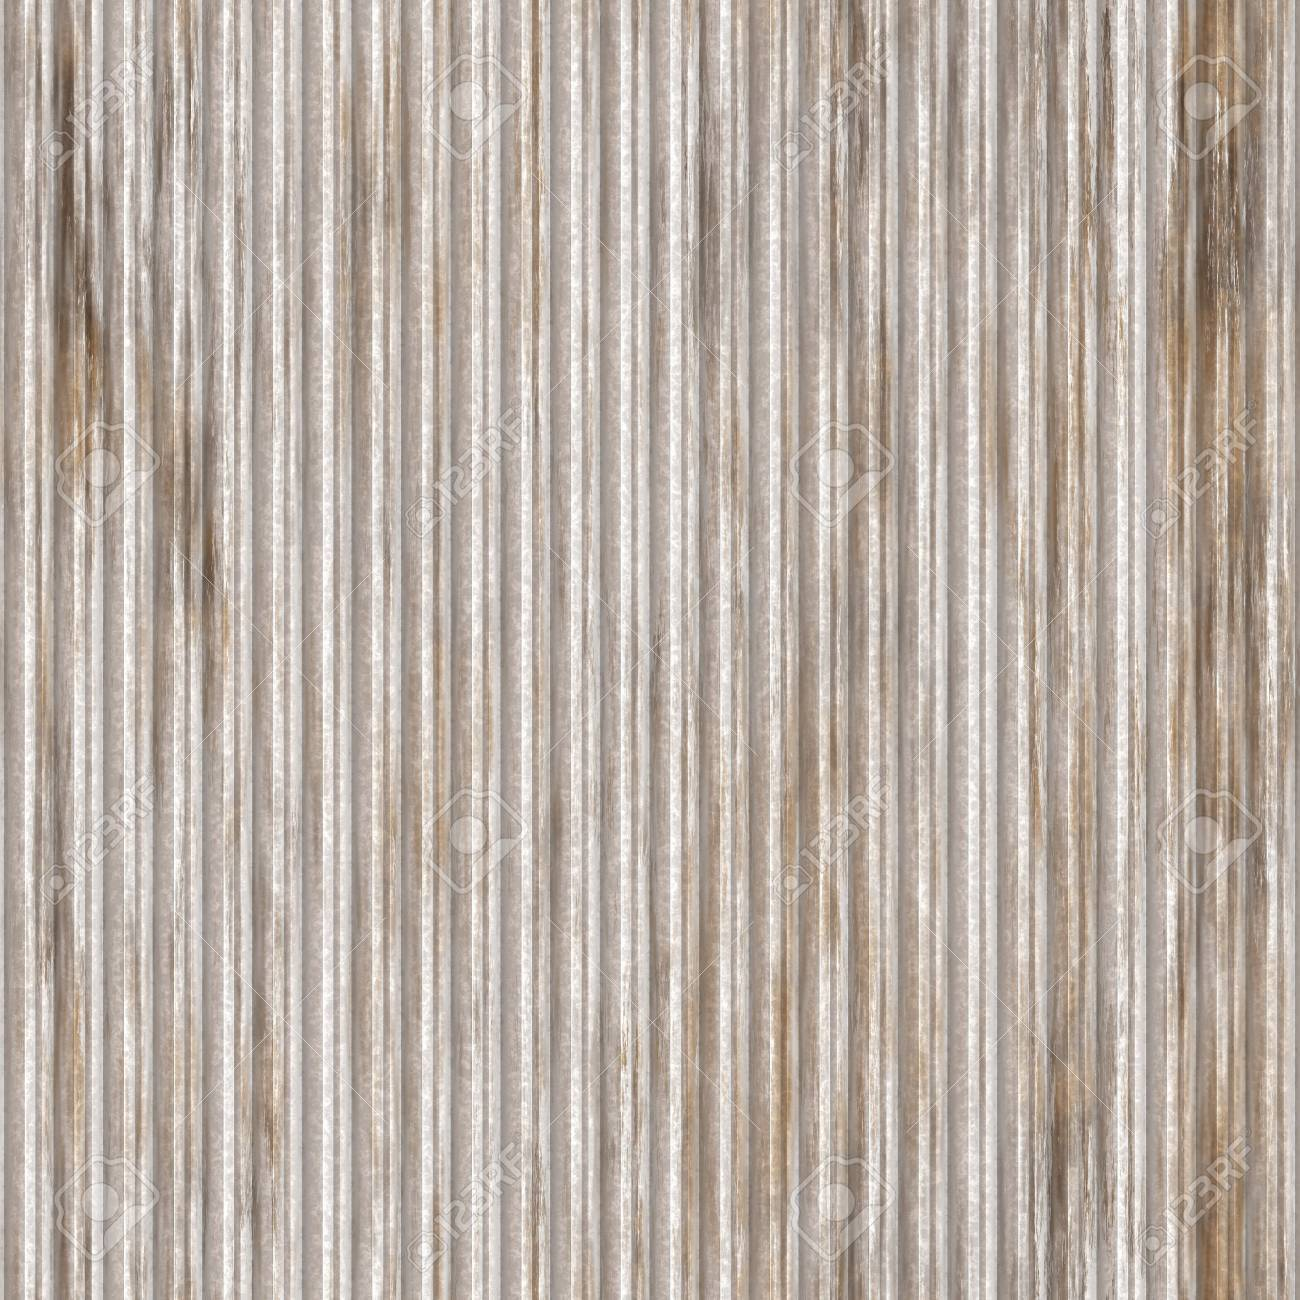 Corrugated metal ridged surface with corrosion seamless texture Stock Photo - 6646606